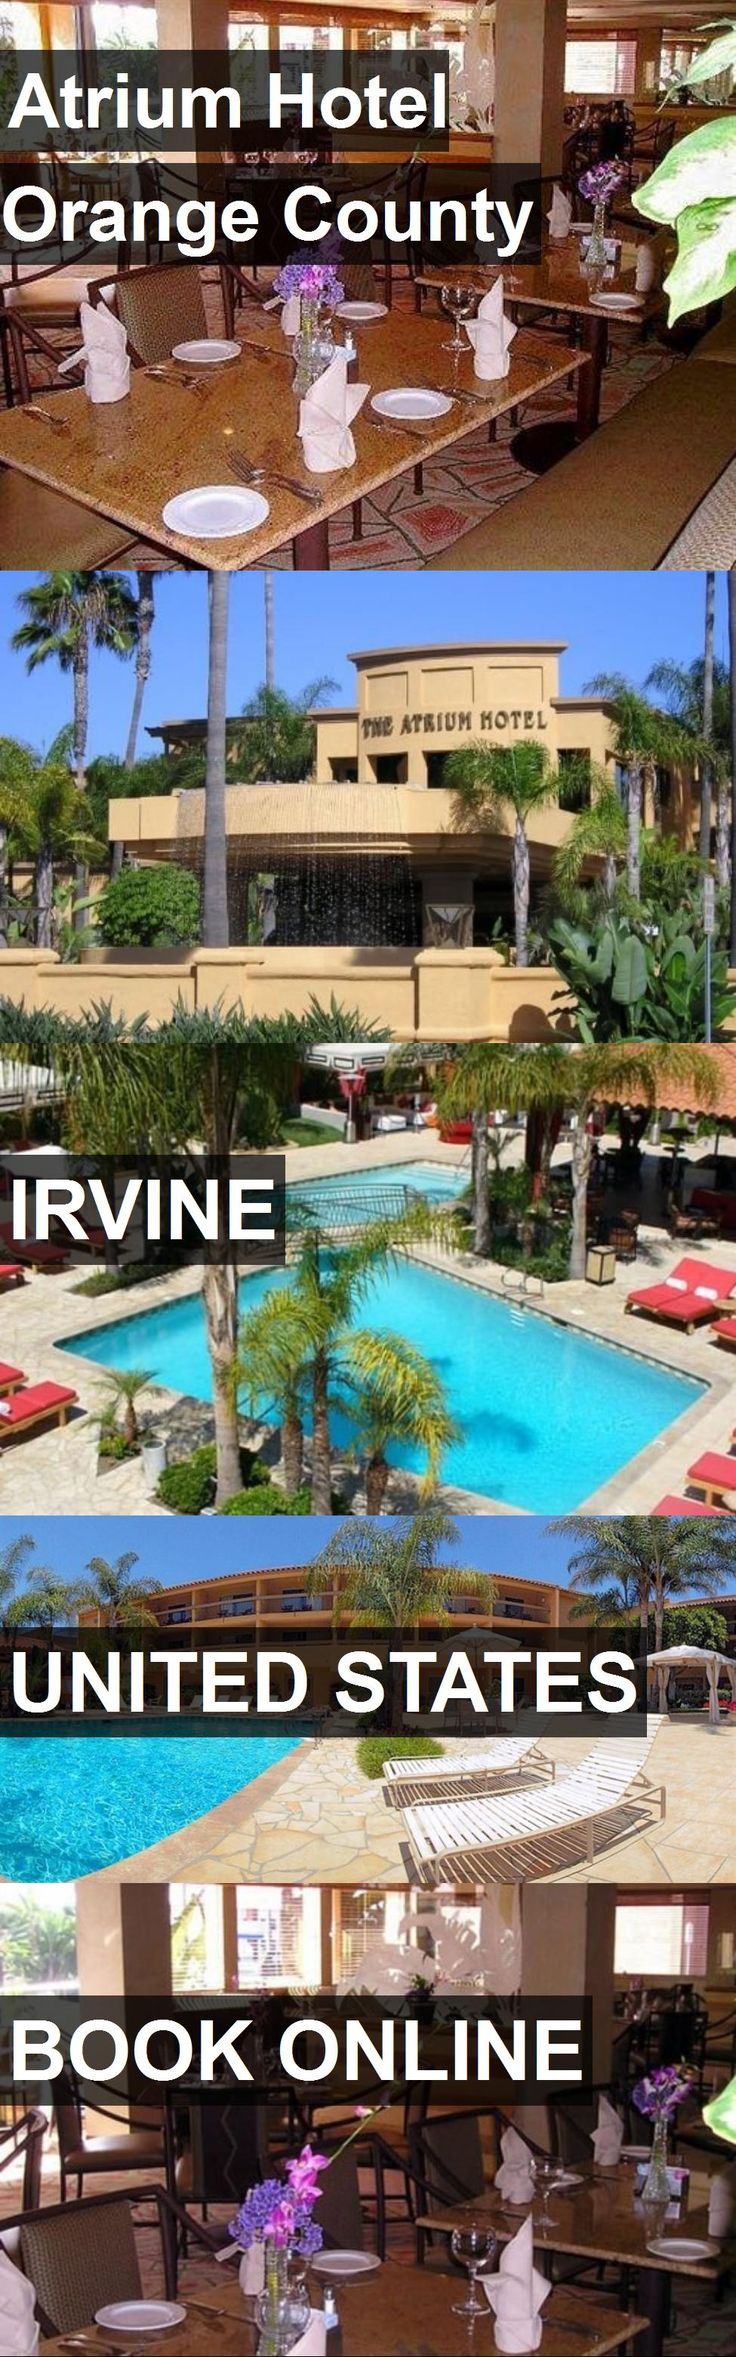 Hotel Atrium Hotel Orange County in Irvine, United States. For more information, photos, reviews and best prices please follow the link. #UnitedStates #Irvine #hotel #travel #vacation